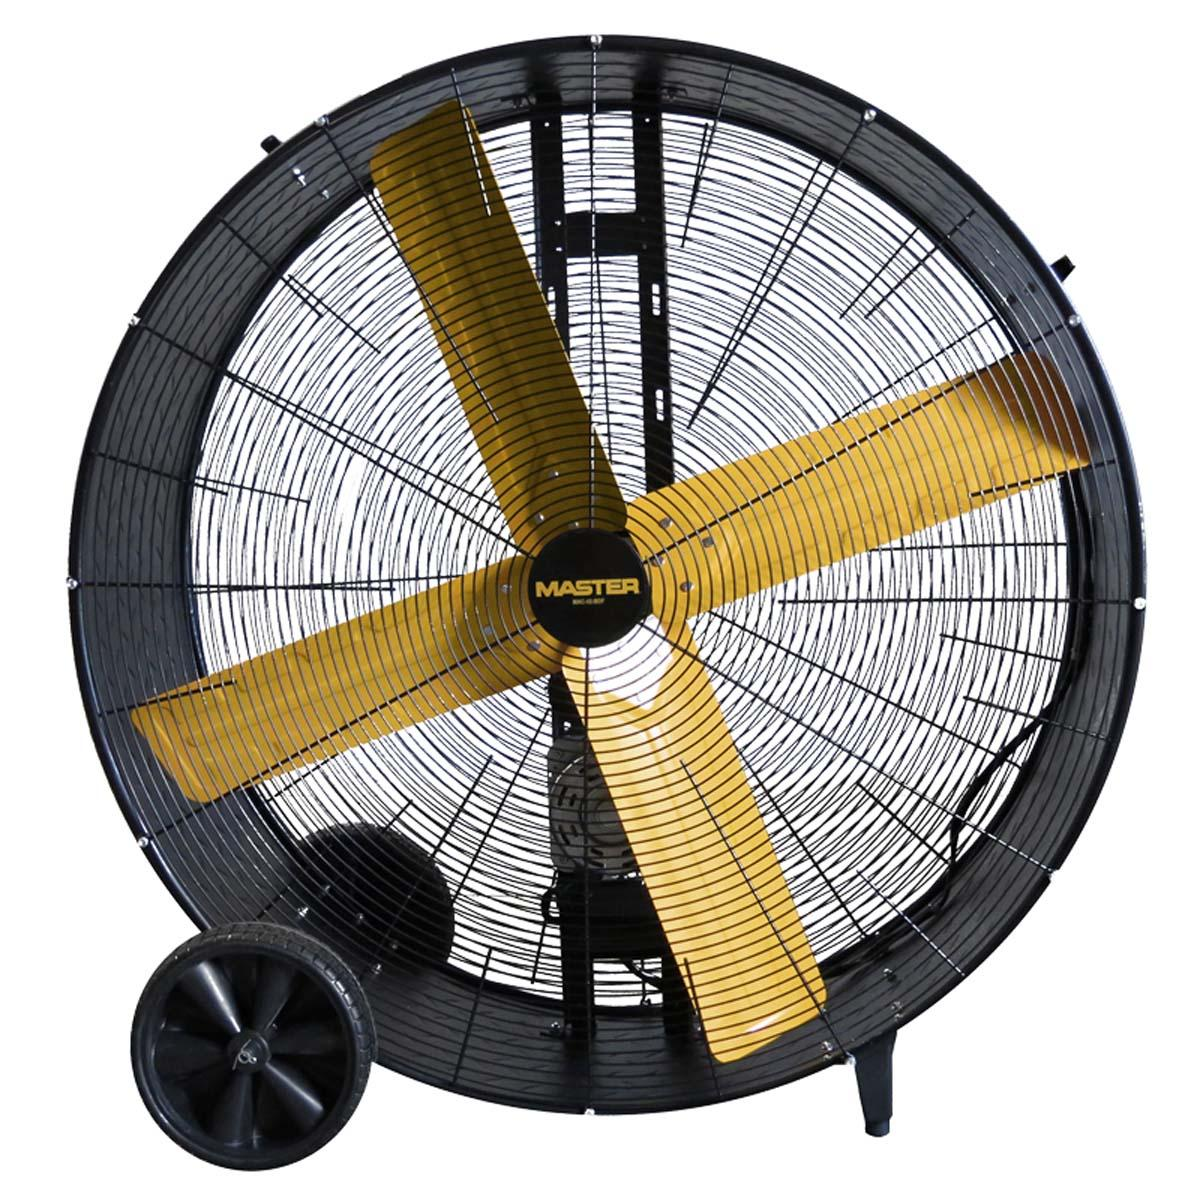 "MASTER 36"" High Capacity Belt Drive Drum Fan"